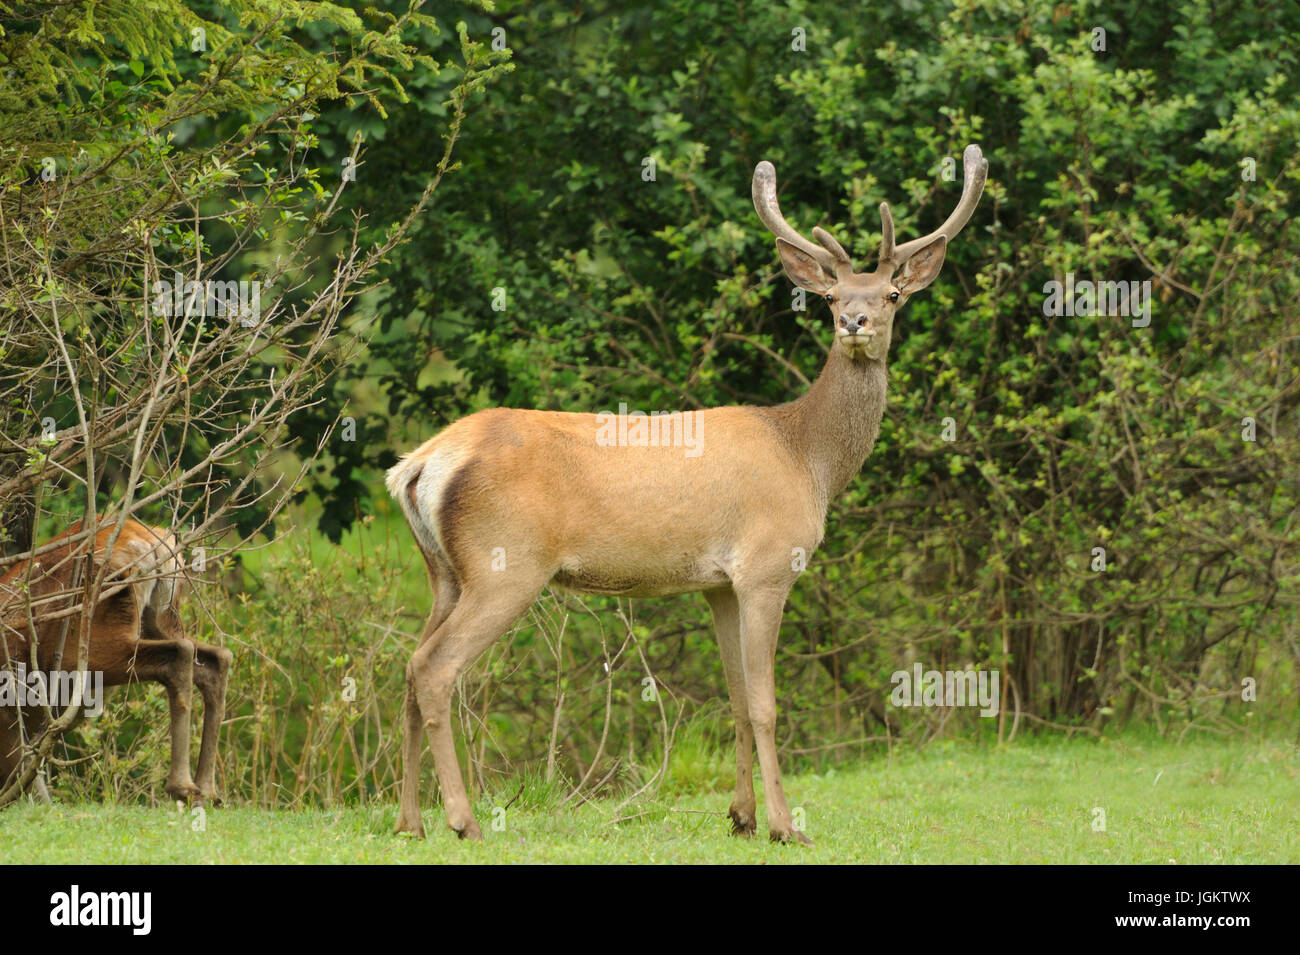 Altai deer in their natural habitat - Stock Image